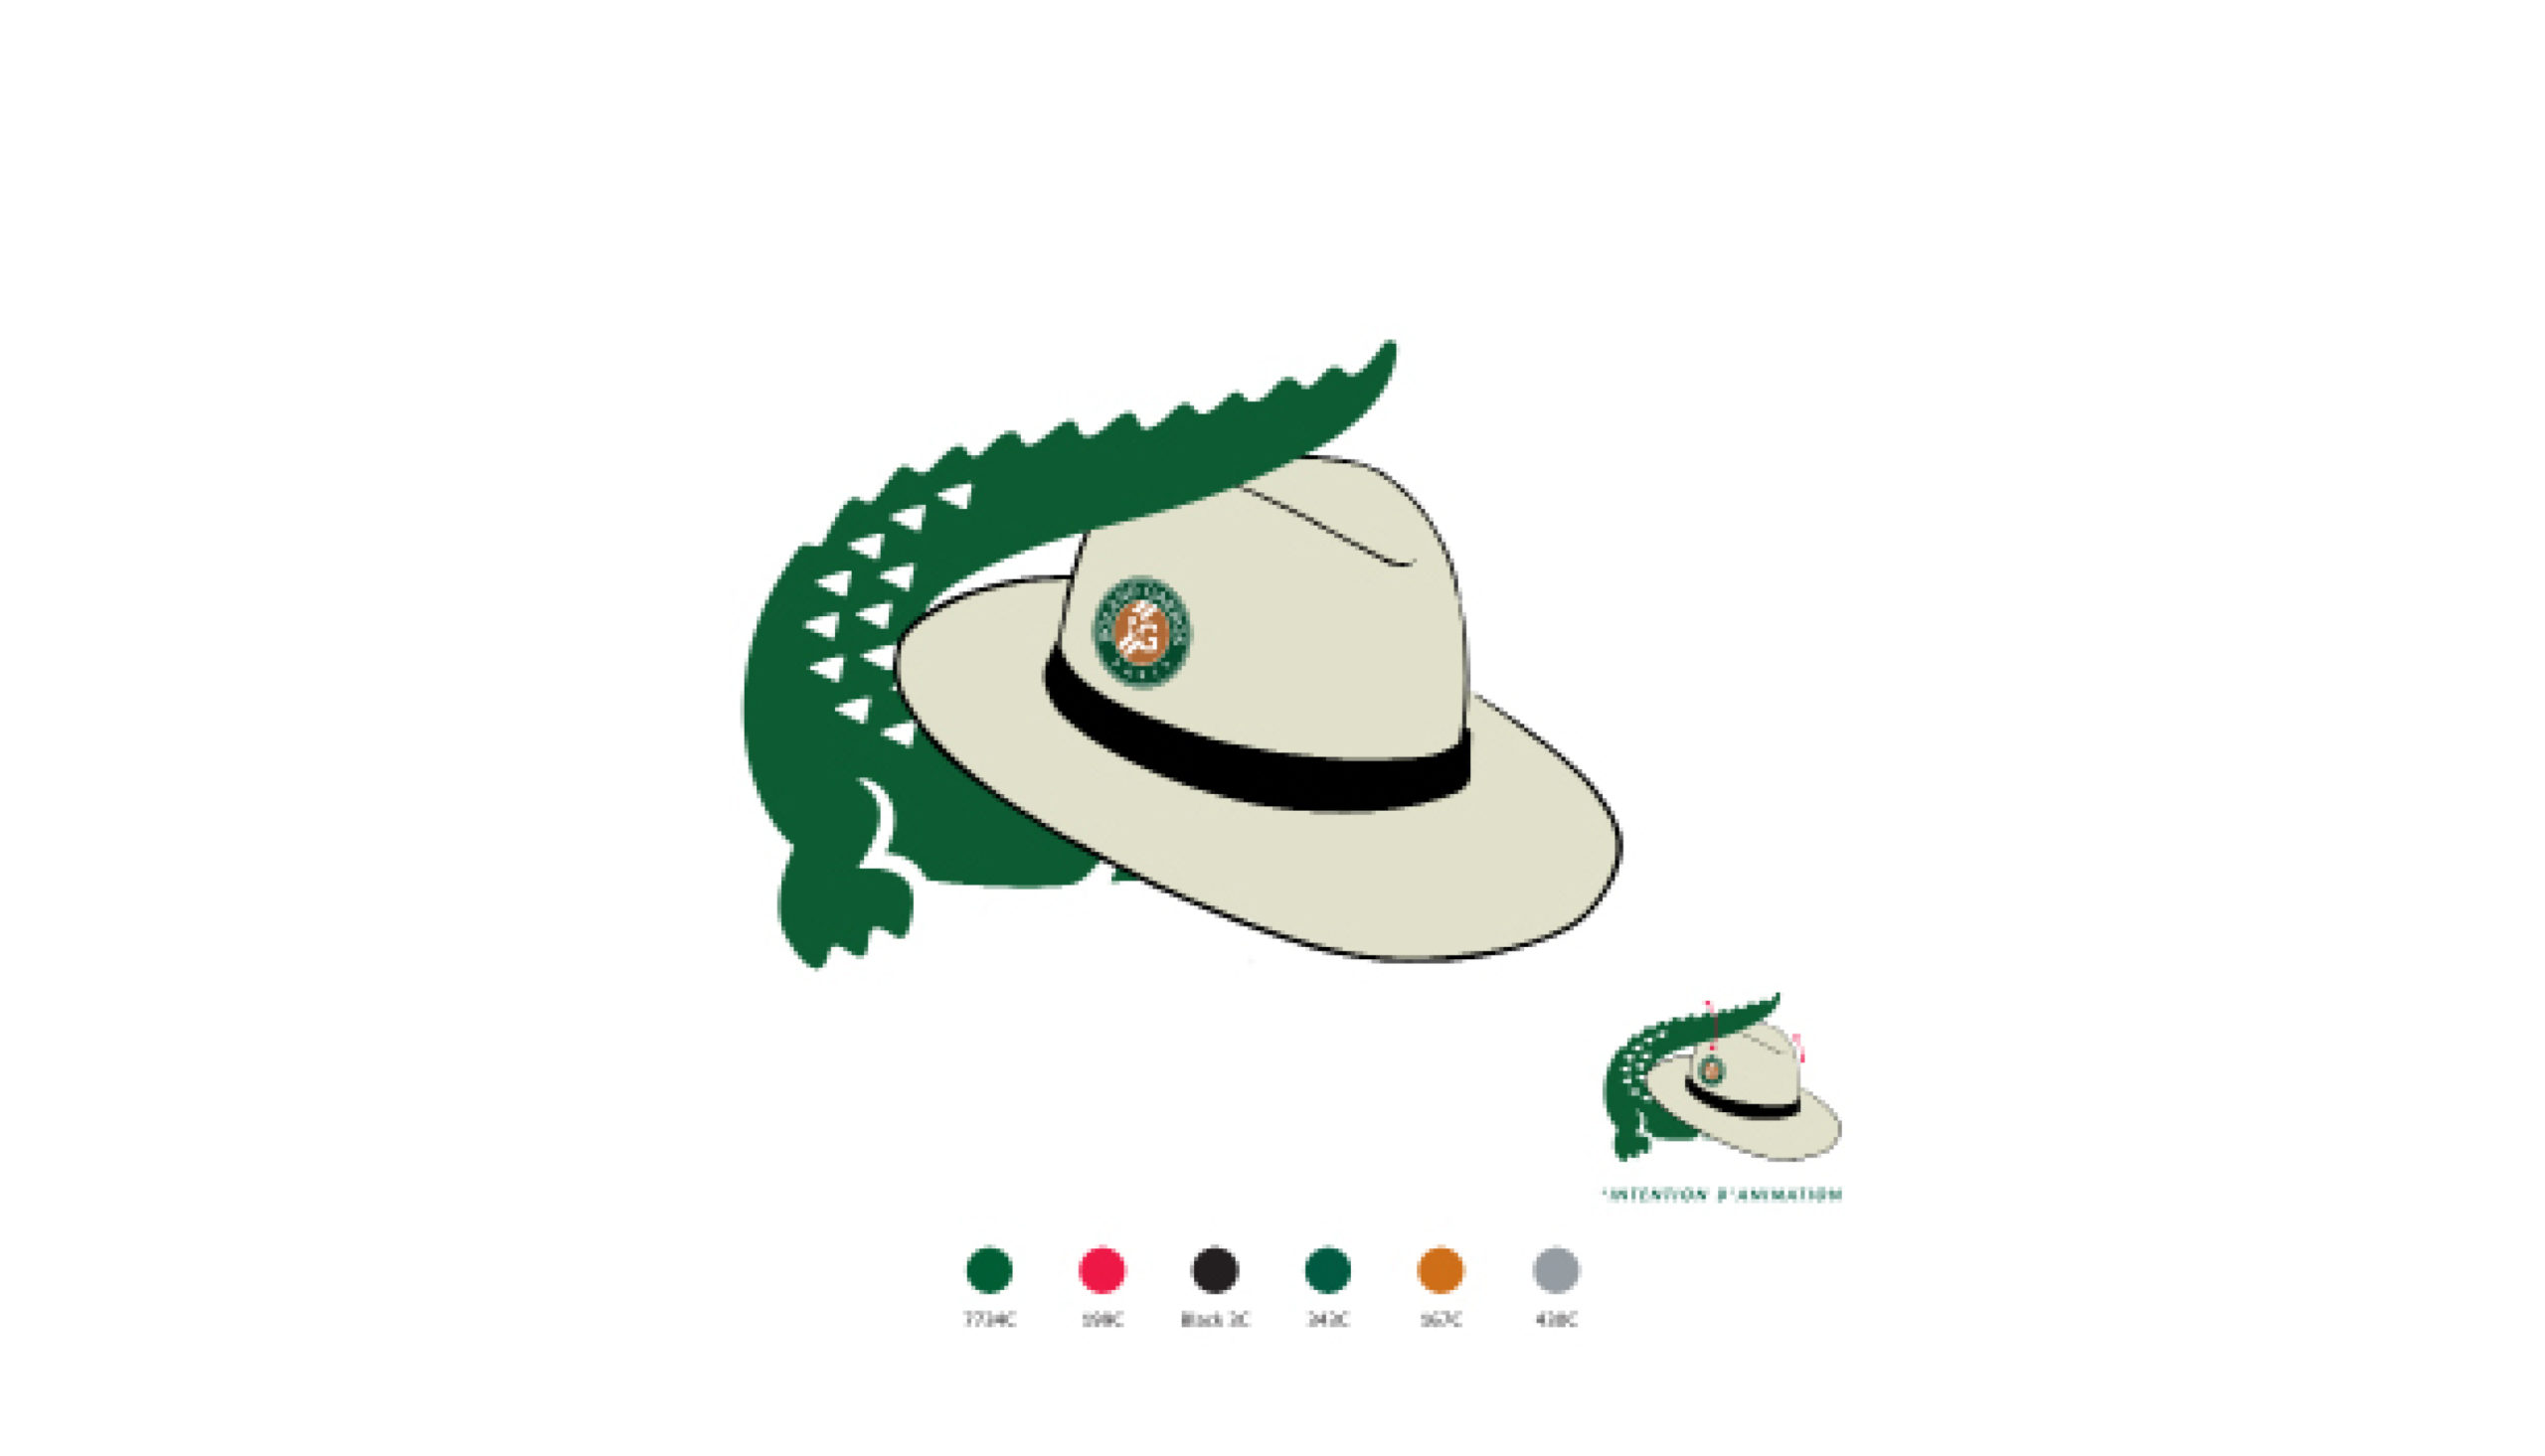 LACOSTE_STICKERS_HOBBYNOTE_R_049